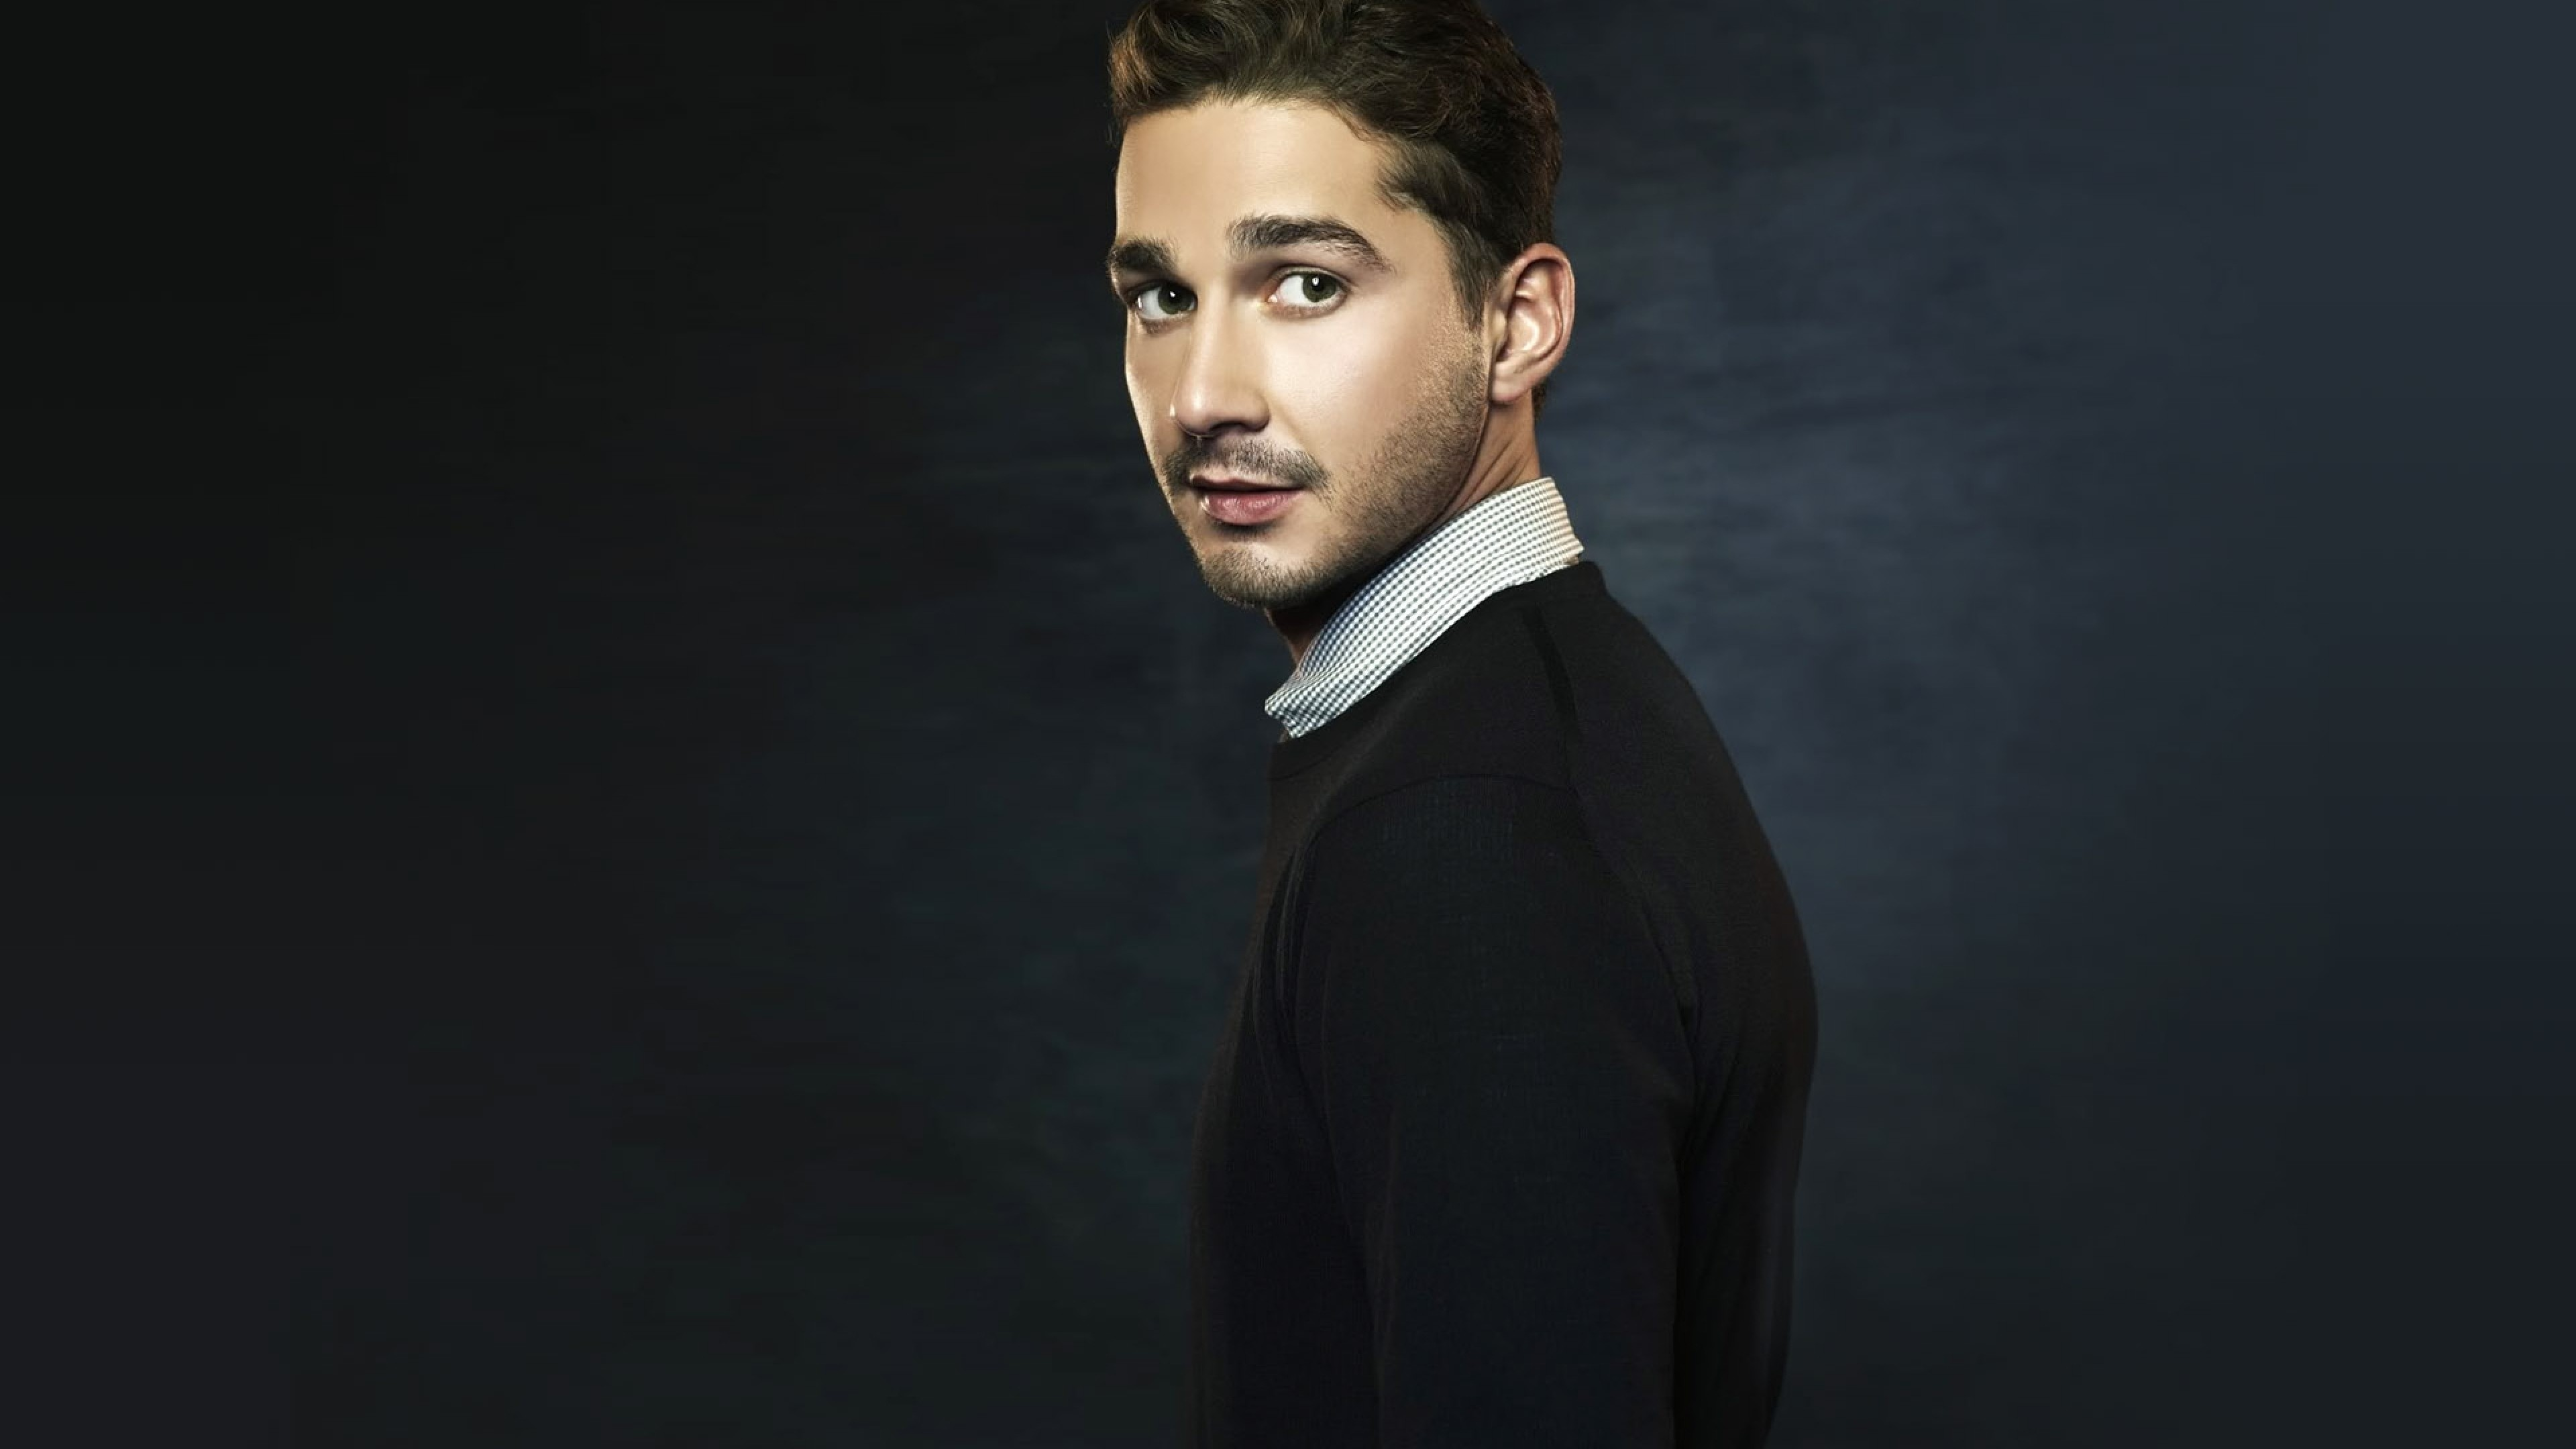 ML45: Shia Labeouf Wallpaper px Download